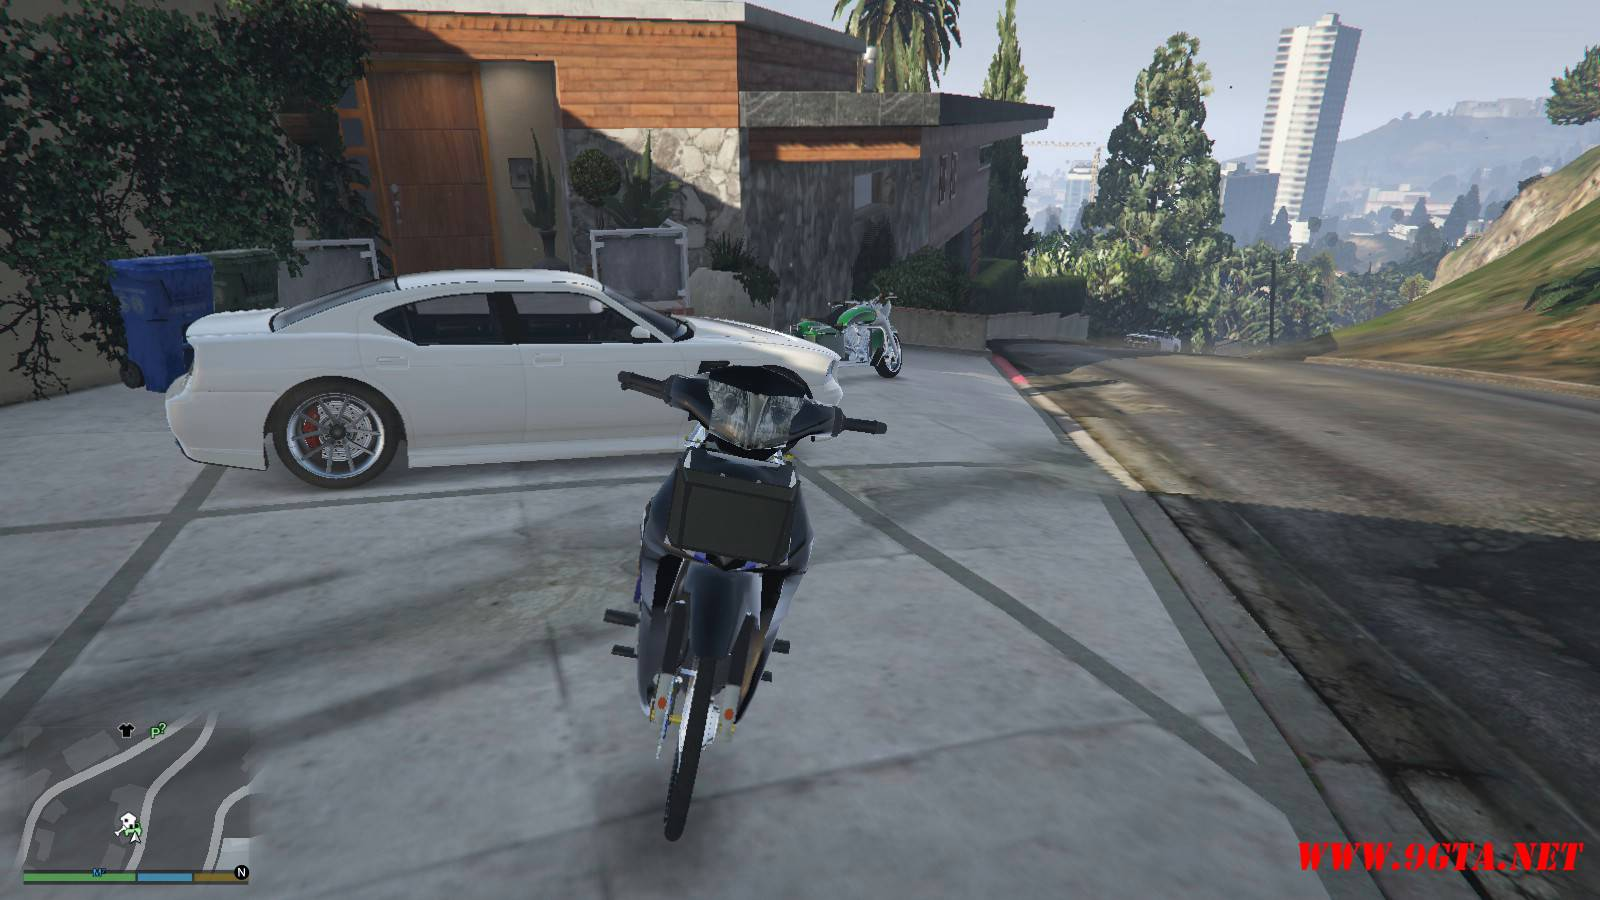 2015 Honda Wave 125i Mod For GTA5 (2)